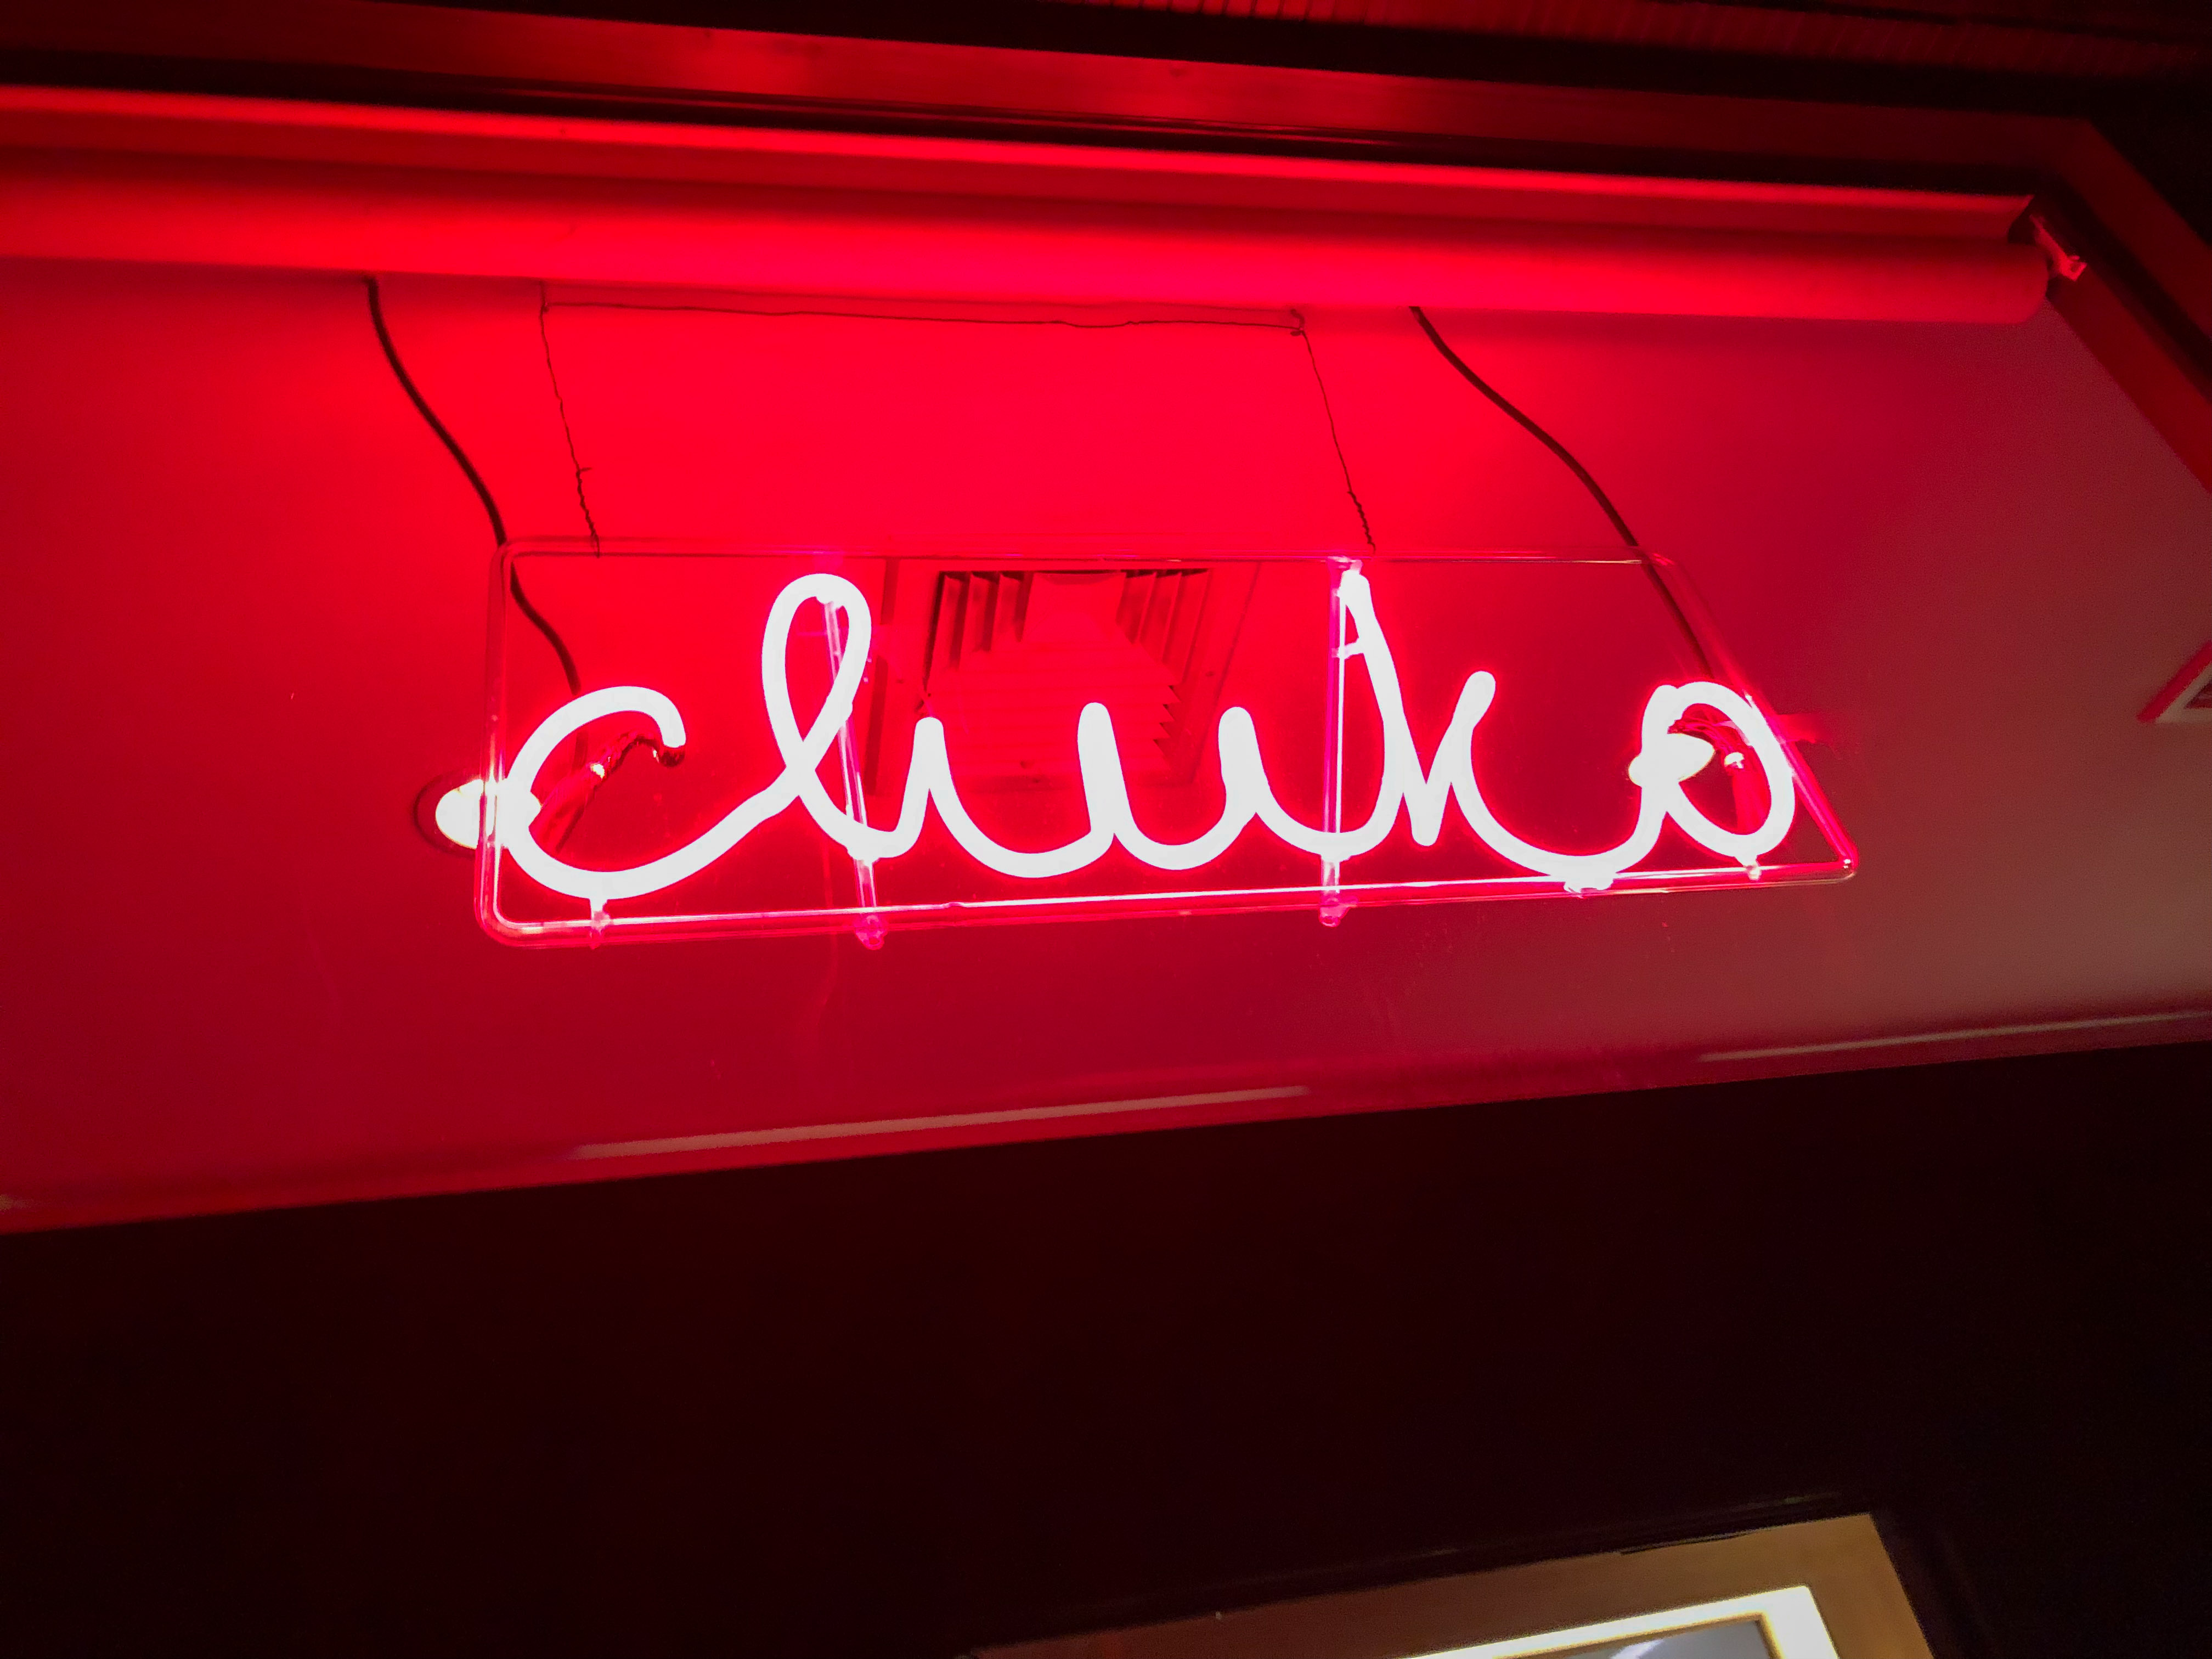 Neon sign outside of chuko